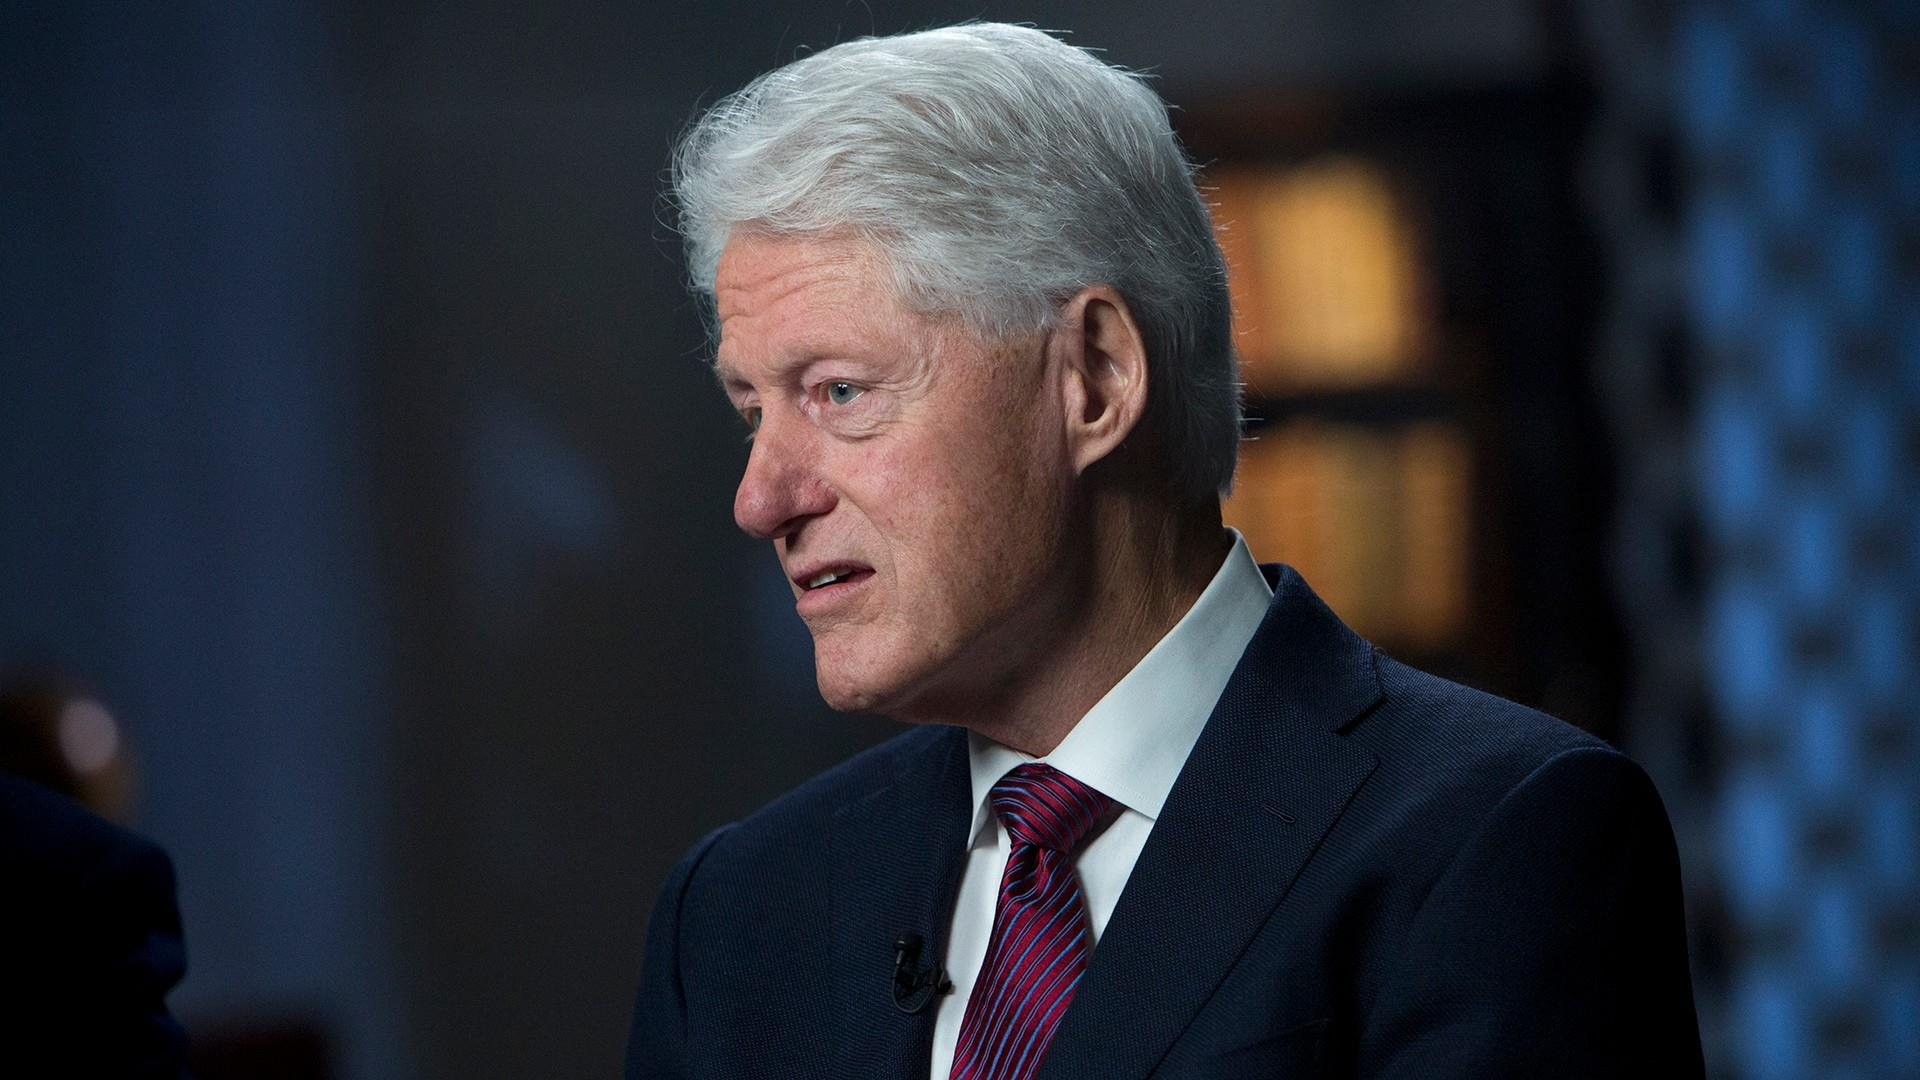 memeorandum: Bill Clinton: I wouldn't have done anything